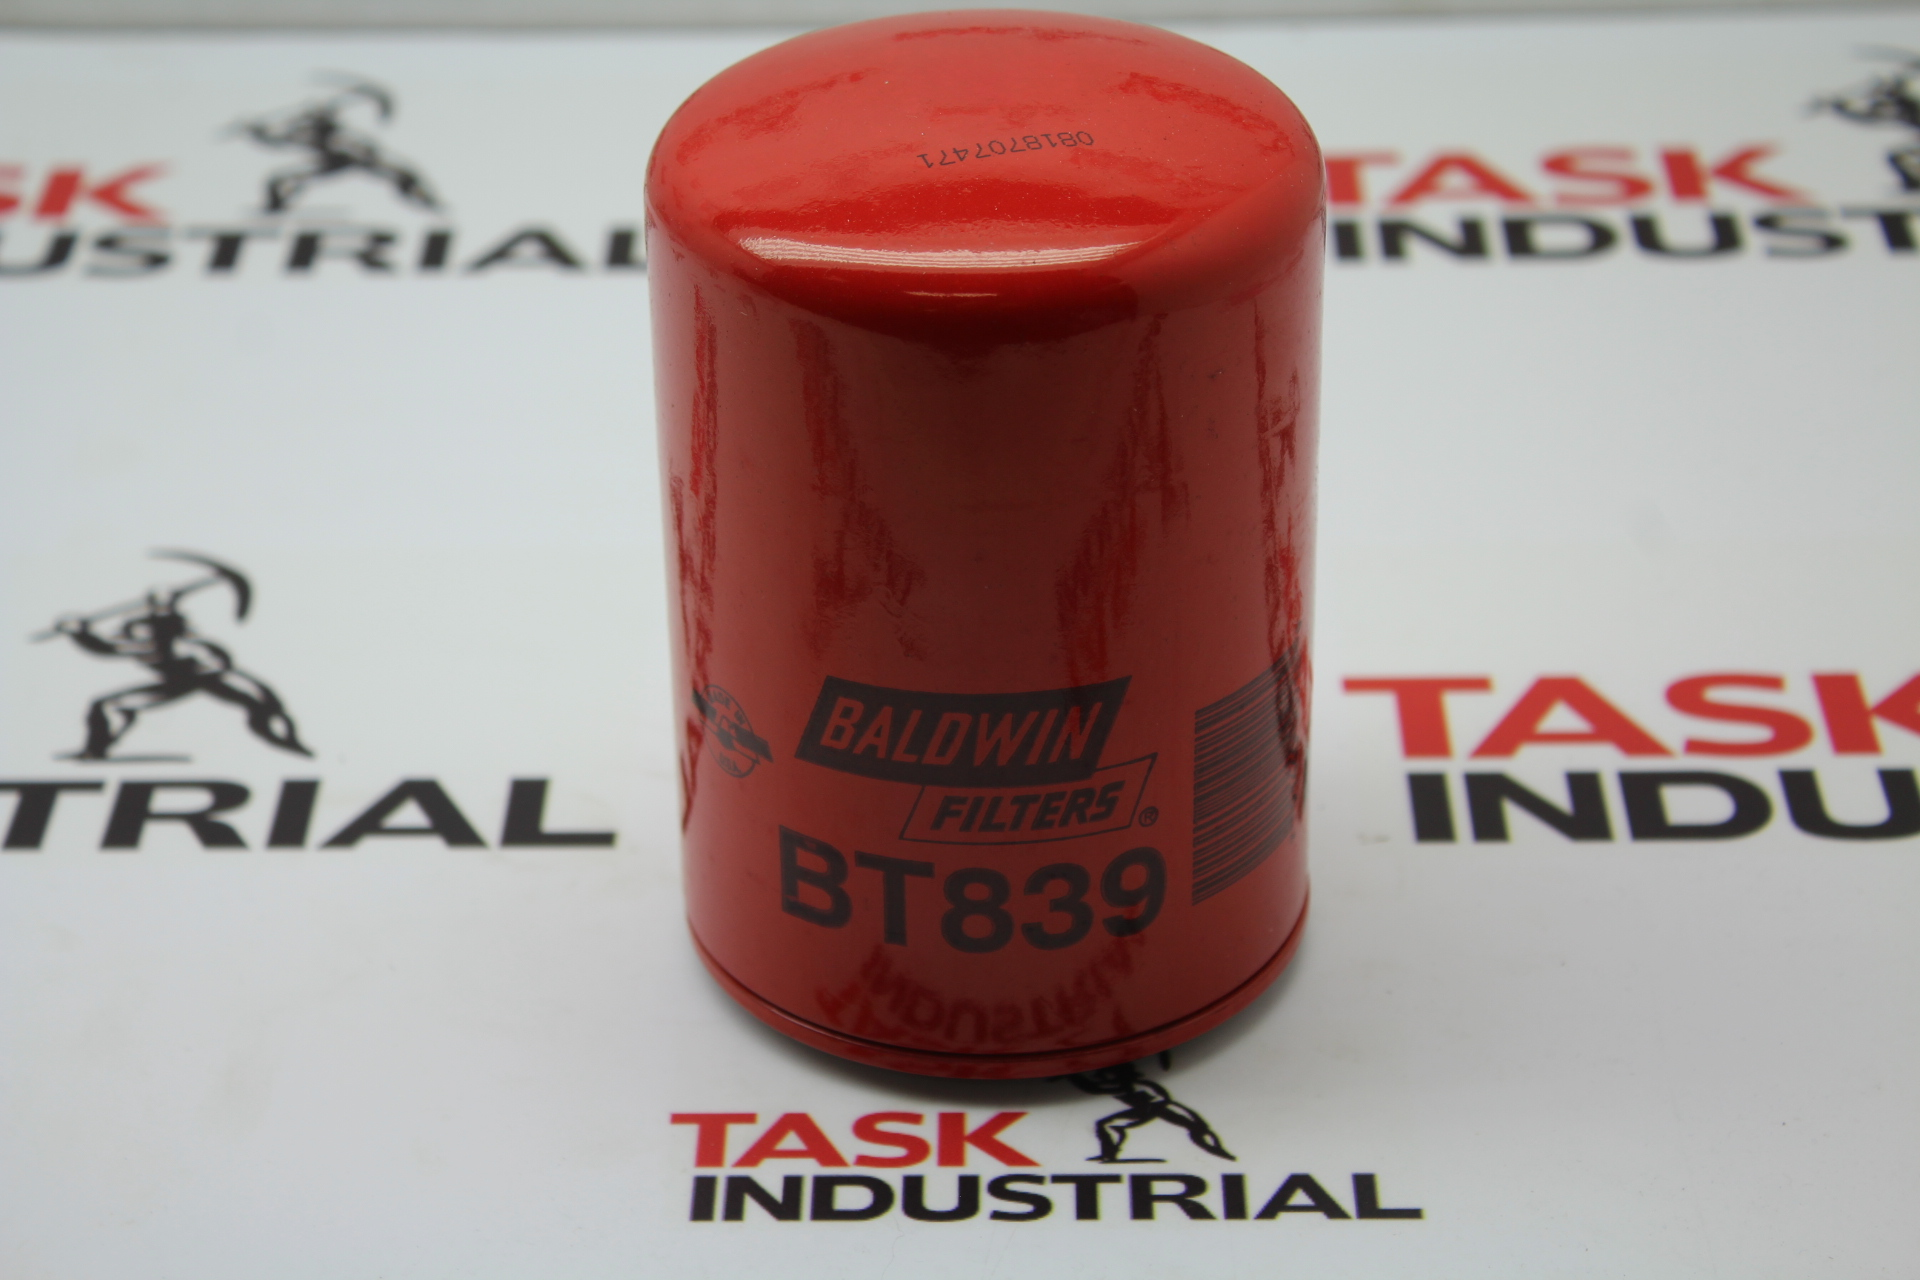 Baldwin Filters BT839 MicroLite